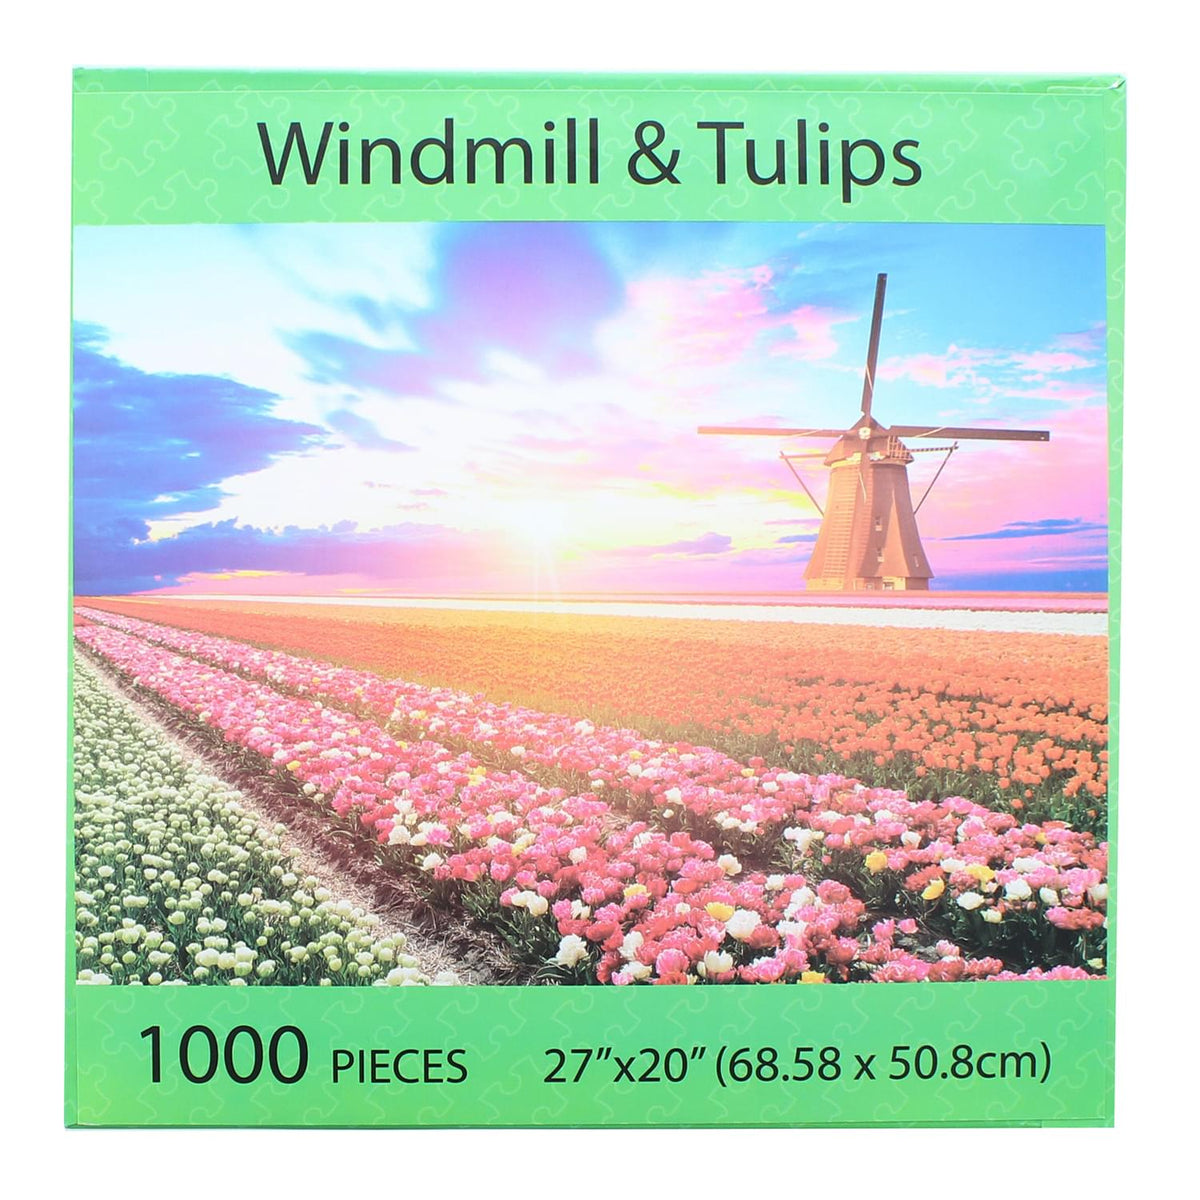 Windmill and Tulips 1000 Piece Jigsaw Puzzle